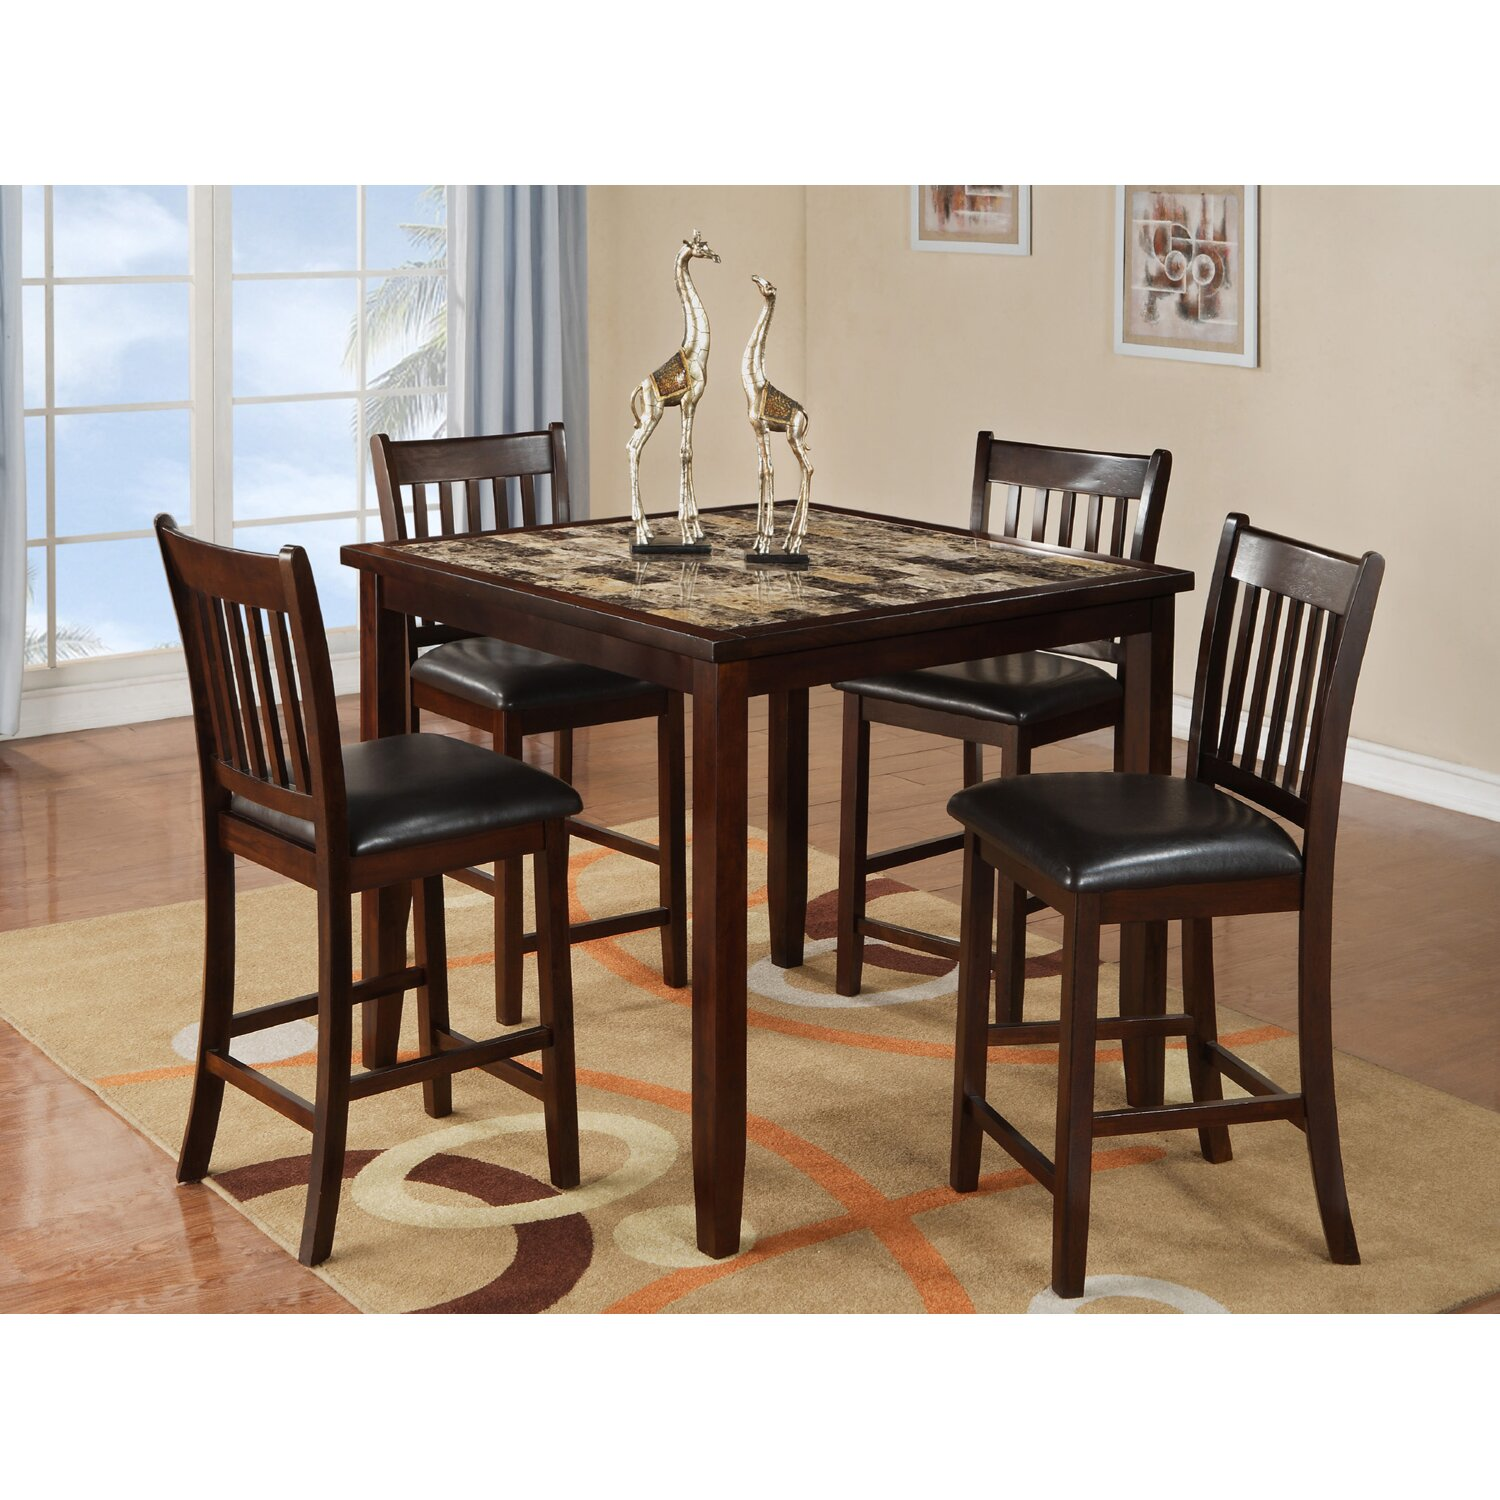 Red Dining Set: Red Barrel Studio Burley Oak 5 Piece Counter Height Dining